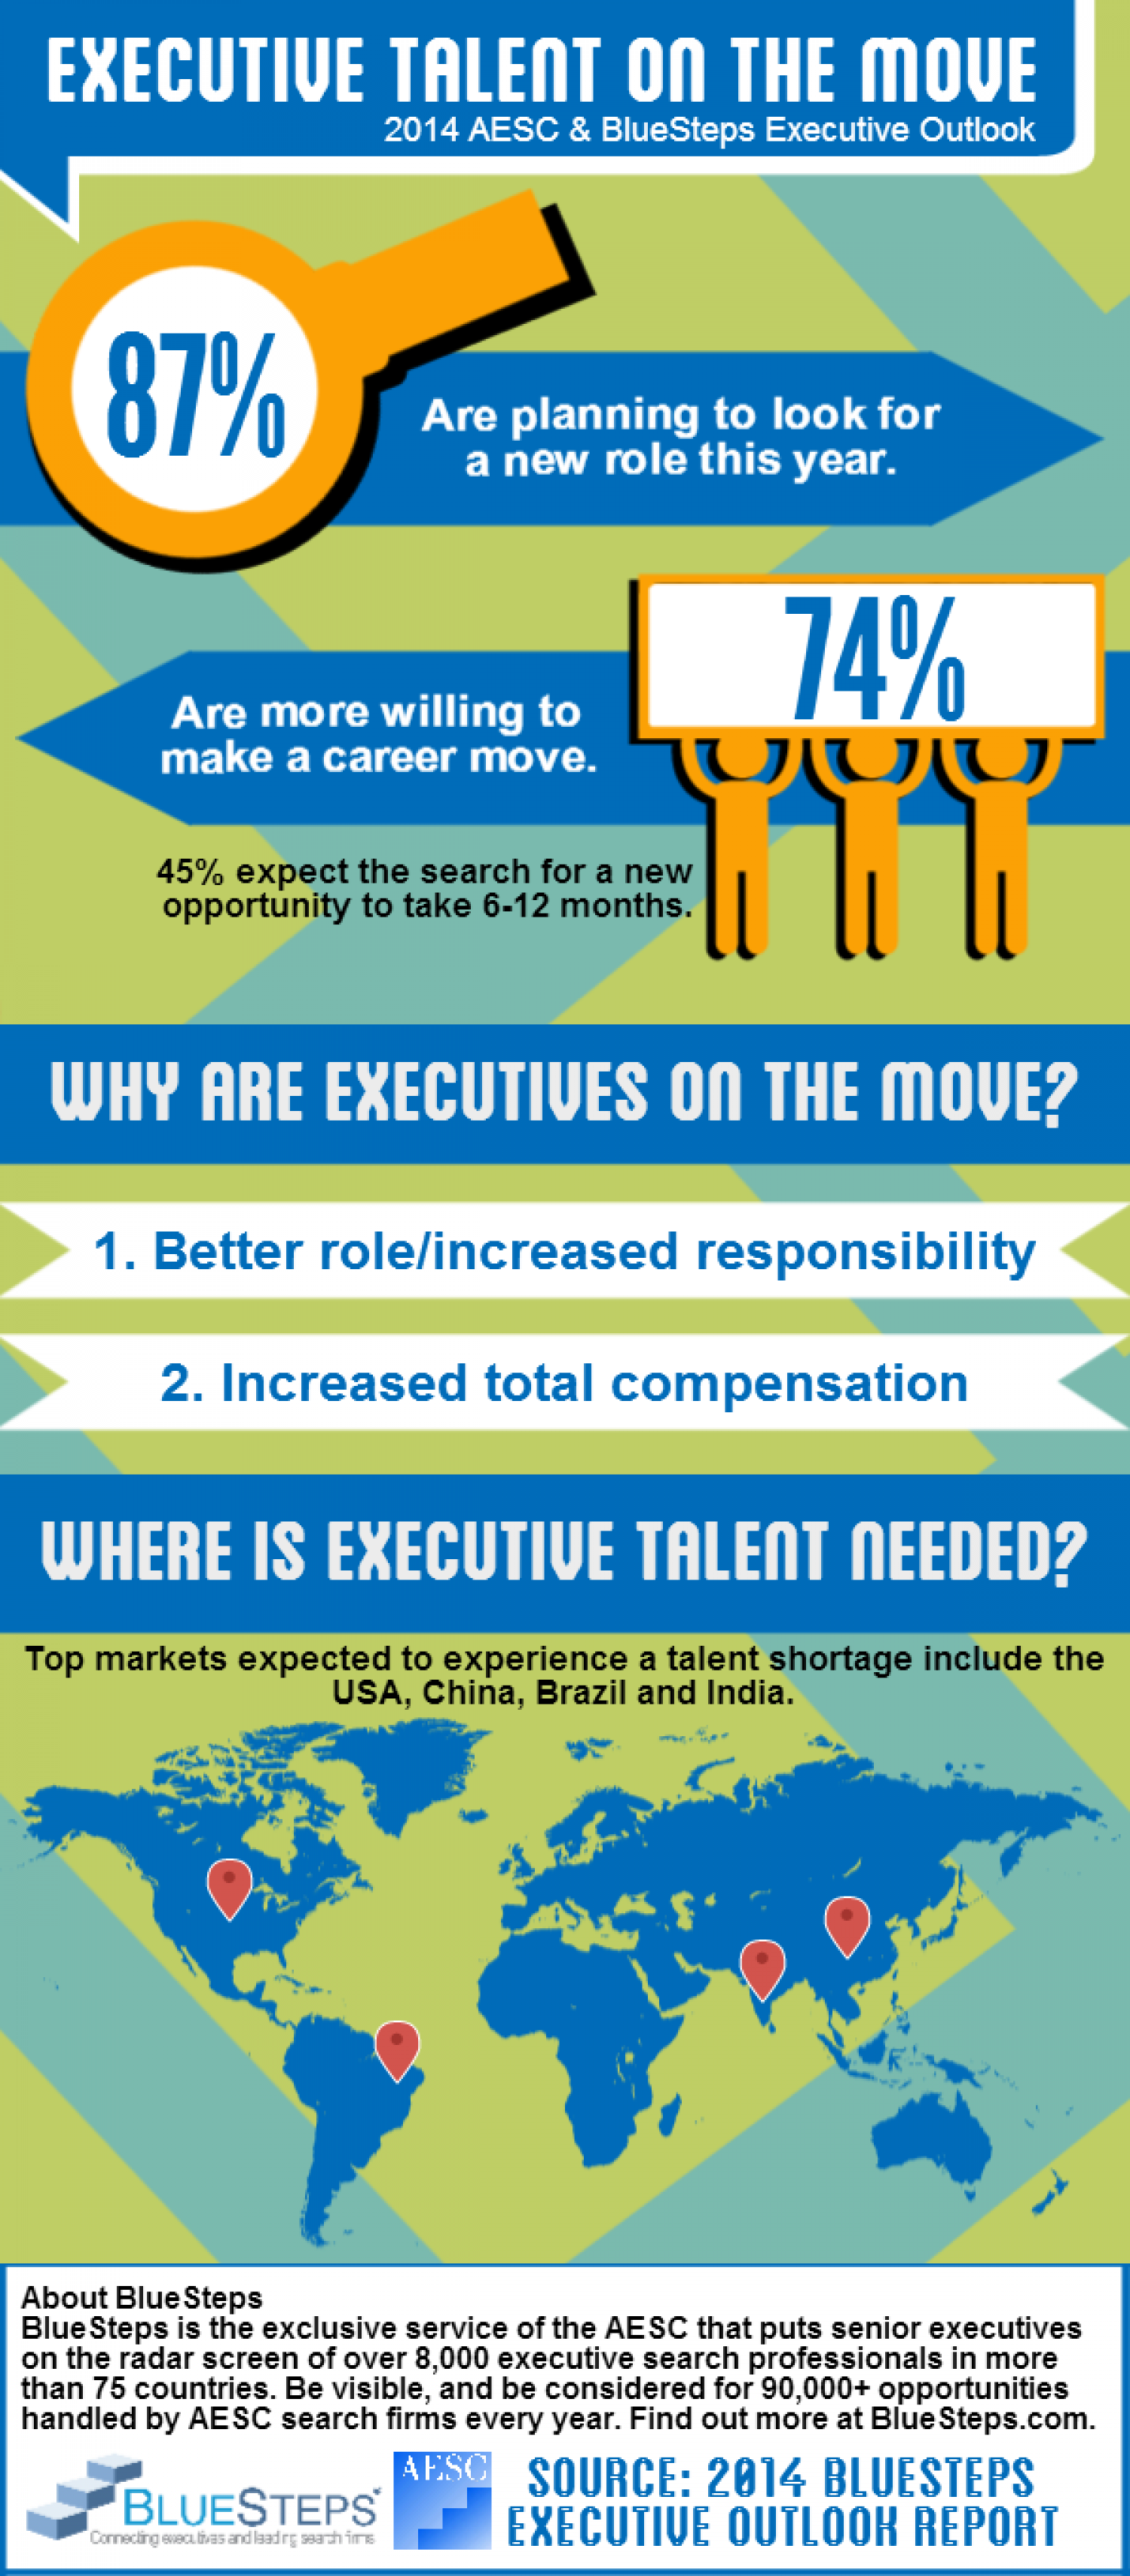 Has a new phase emerged in the War for Executive Talent? Infographic